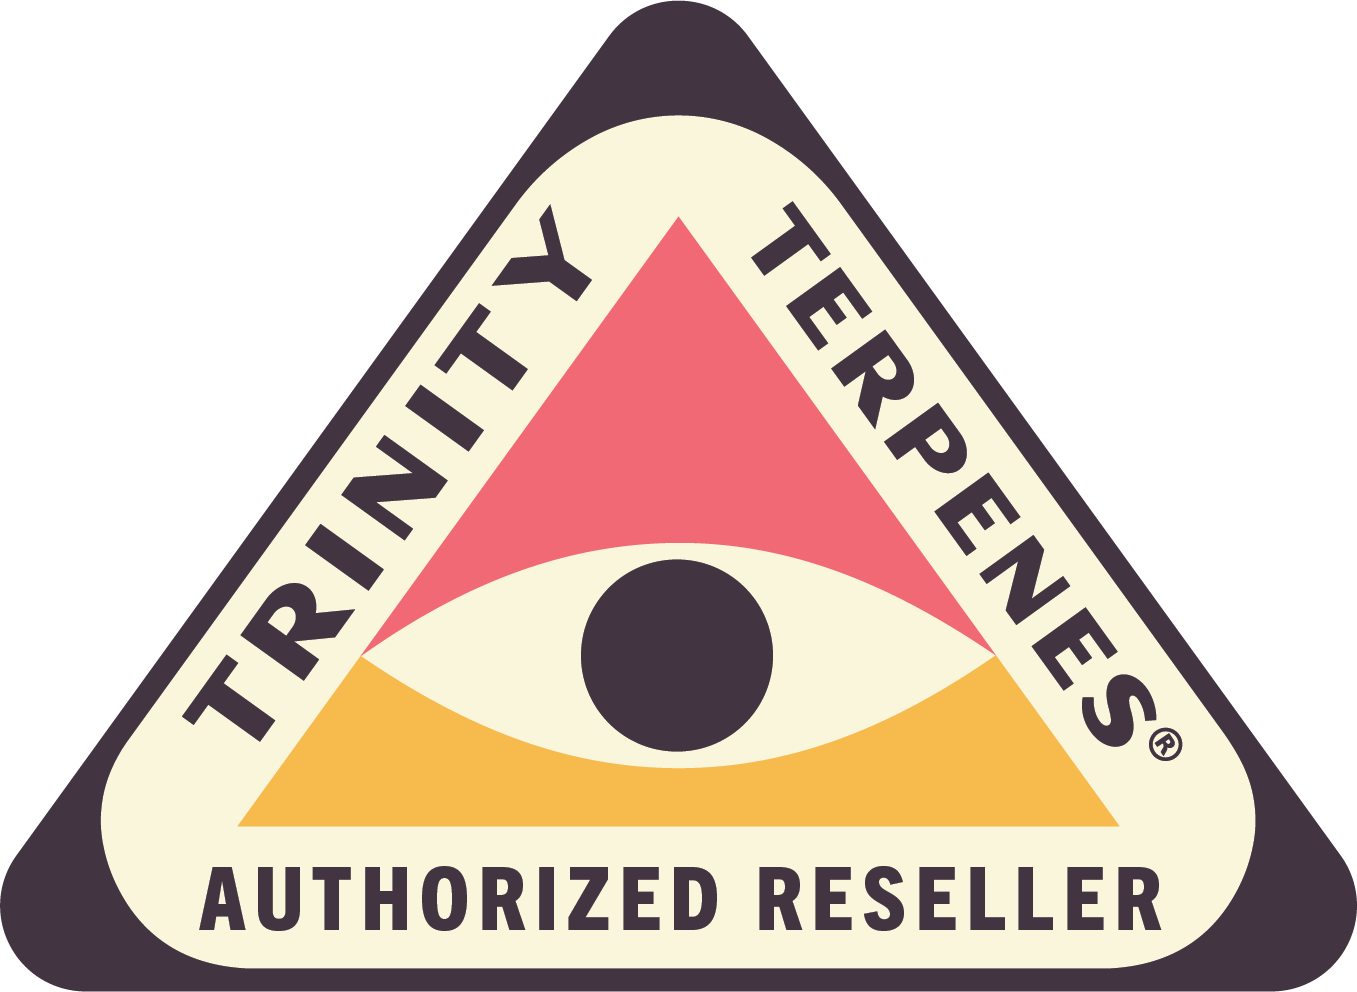 Authorized Reseller Trinity Terpenes